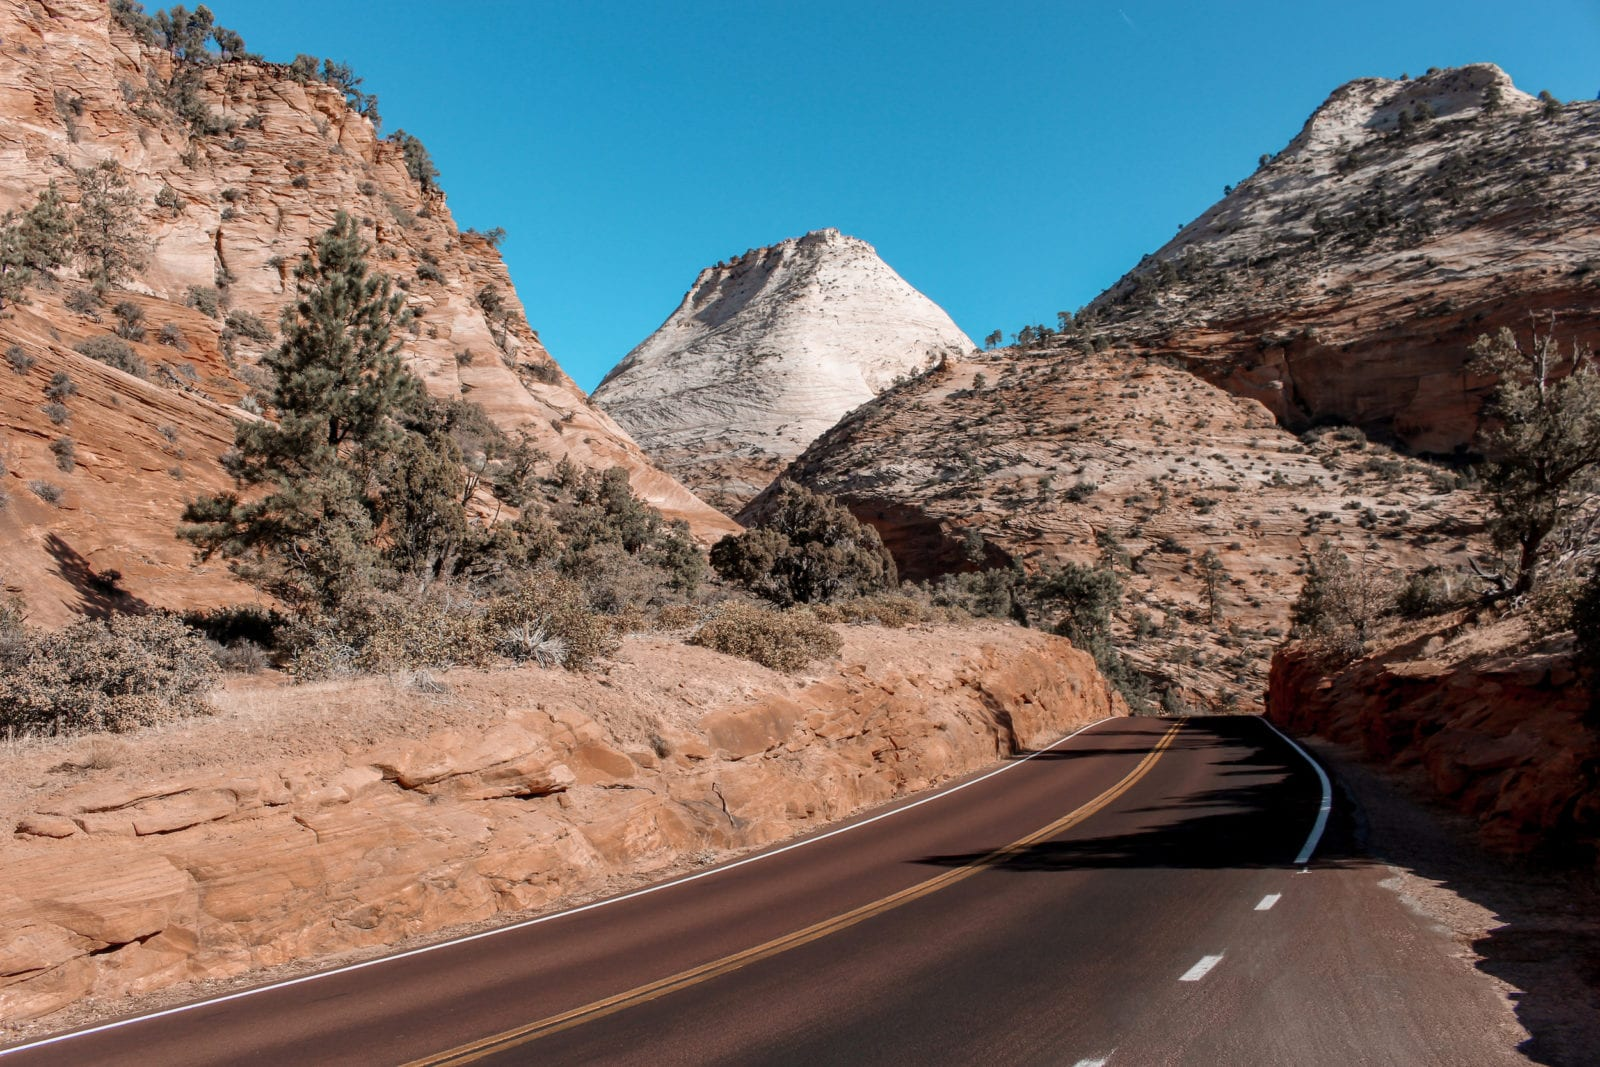 This is a shot of Zion National Park, with the road and the mountains in the background.